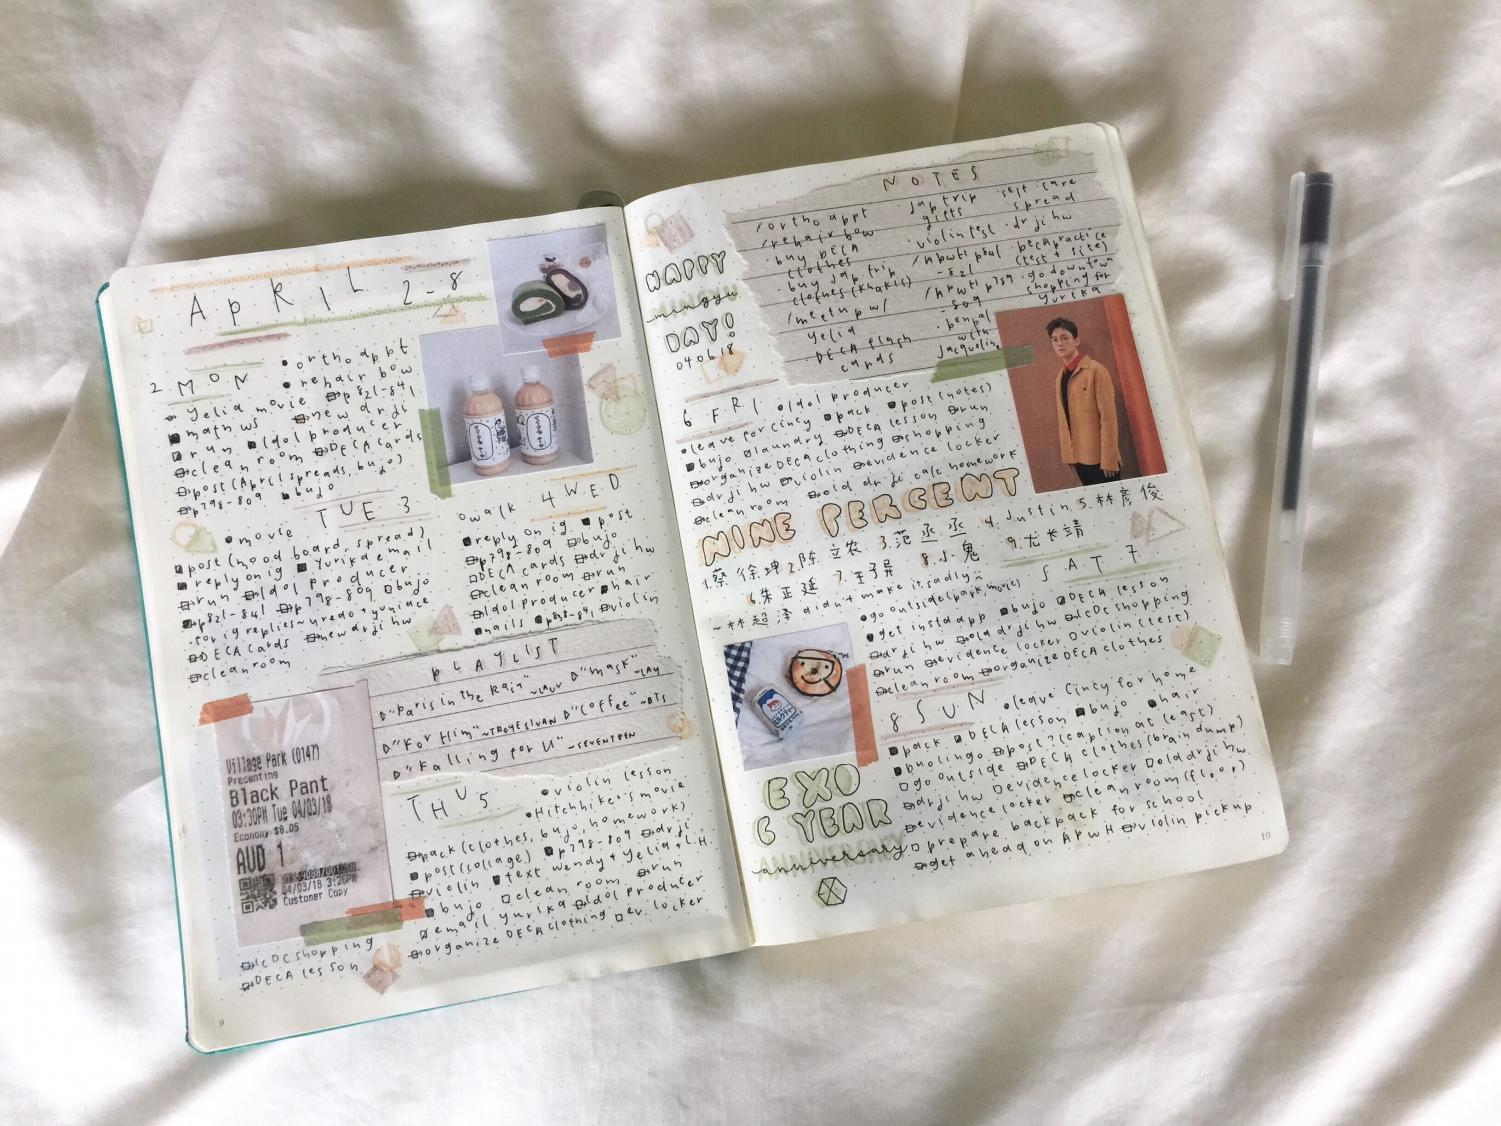 Here is a spread that writing coach Grace Xu made what happened each day on a trip she went on.